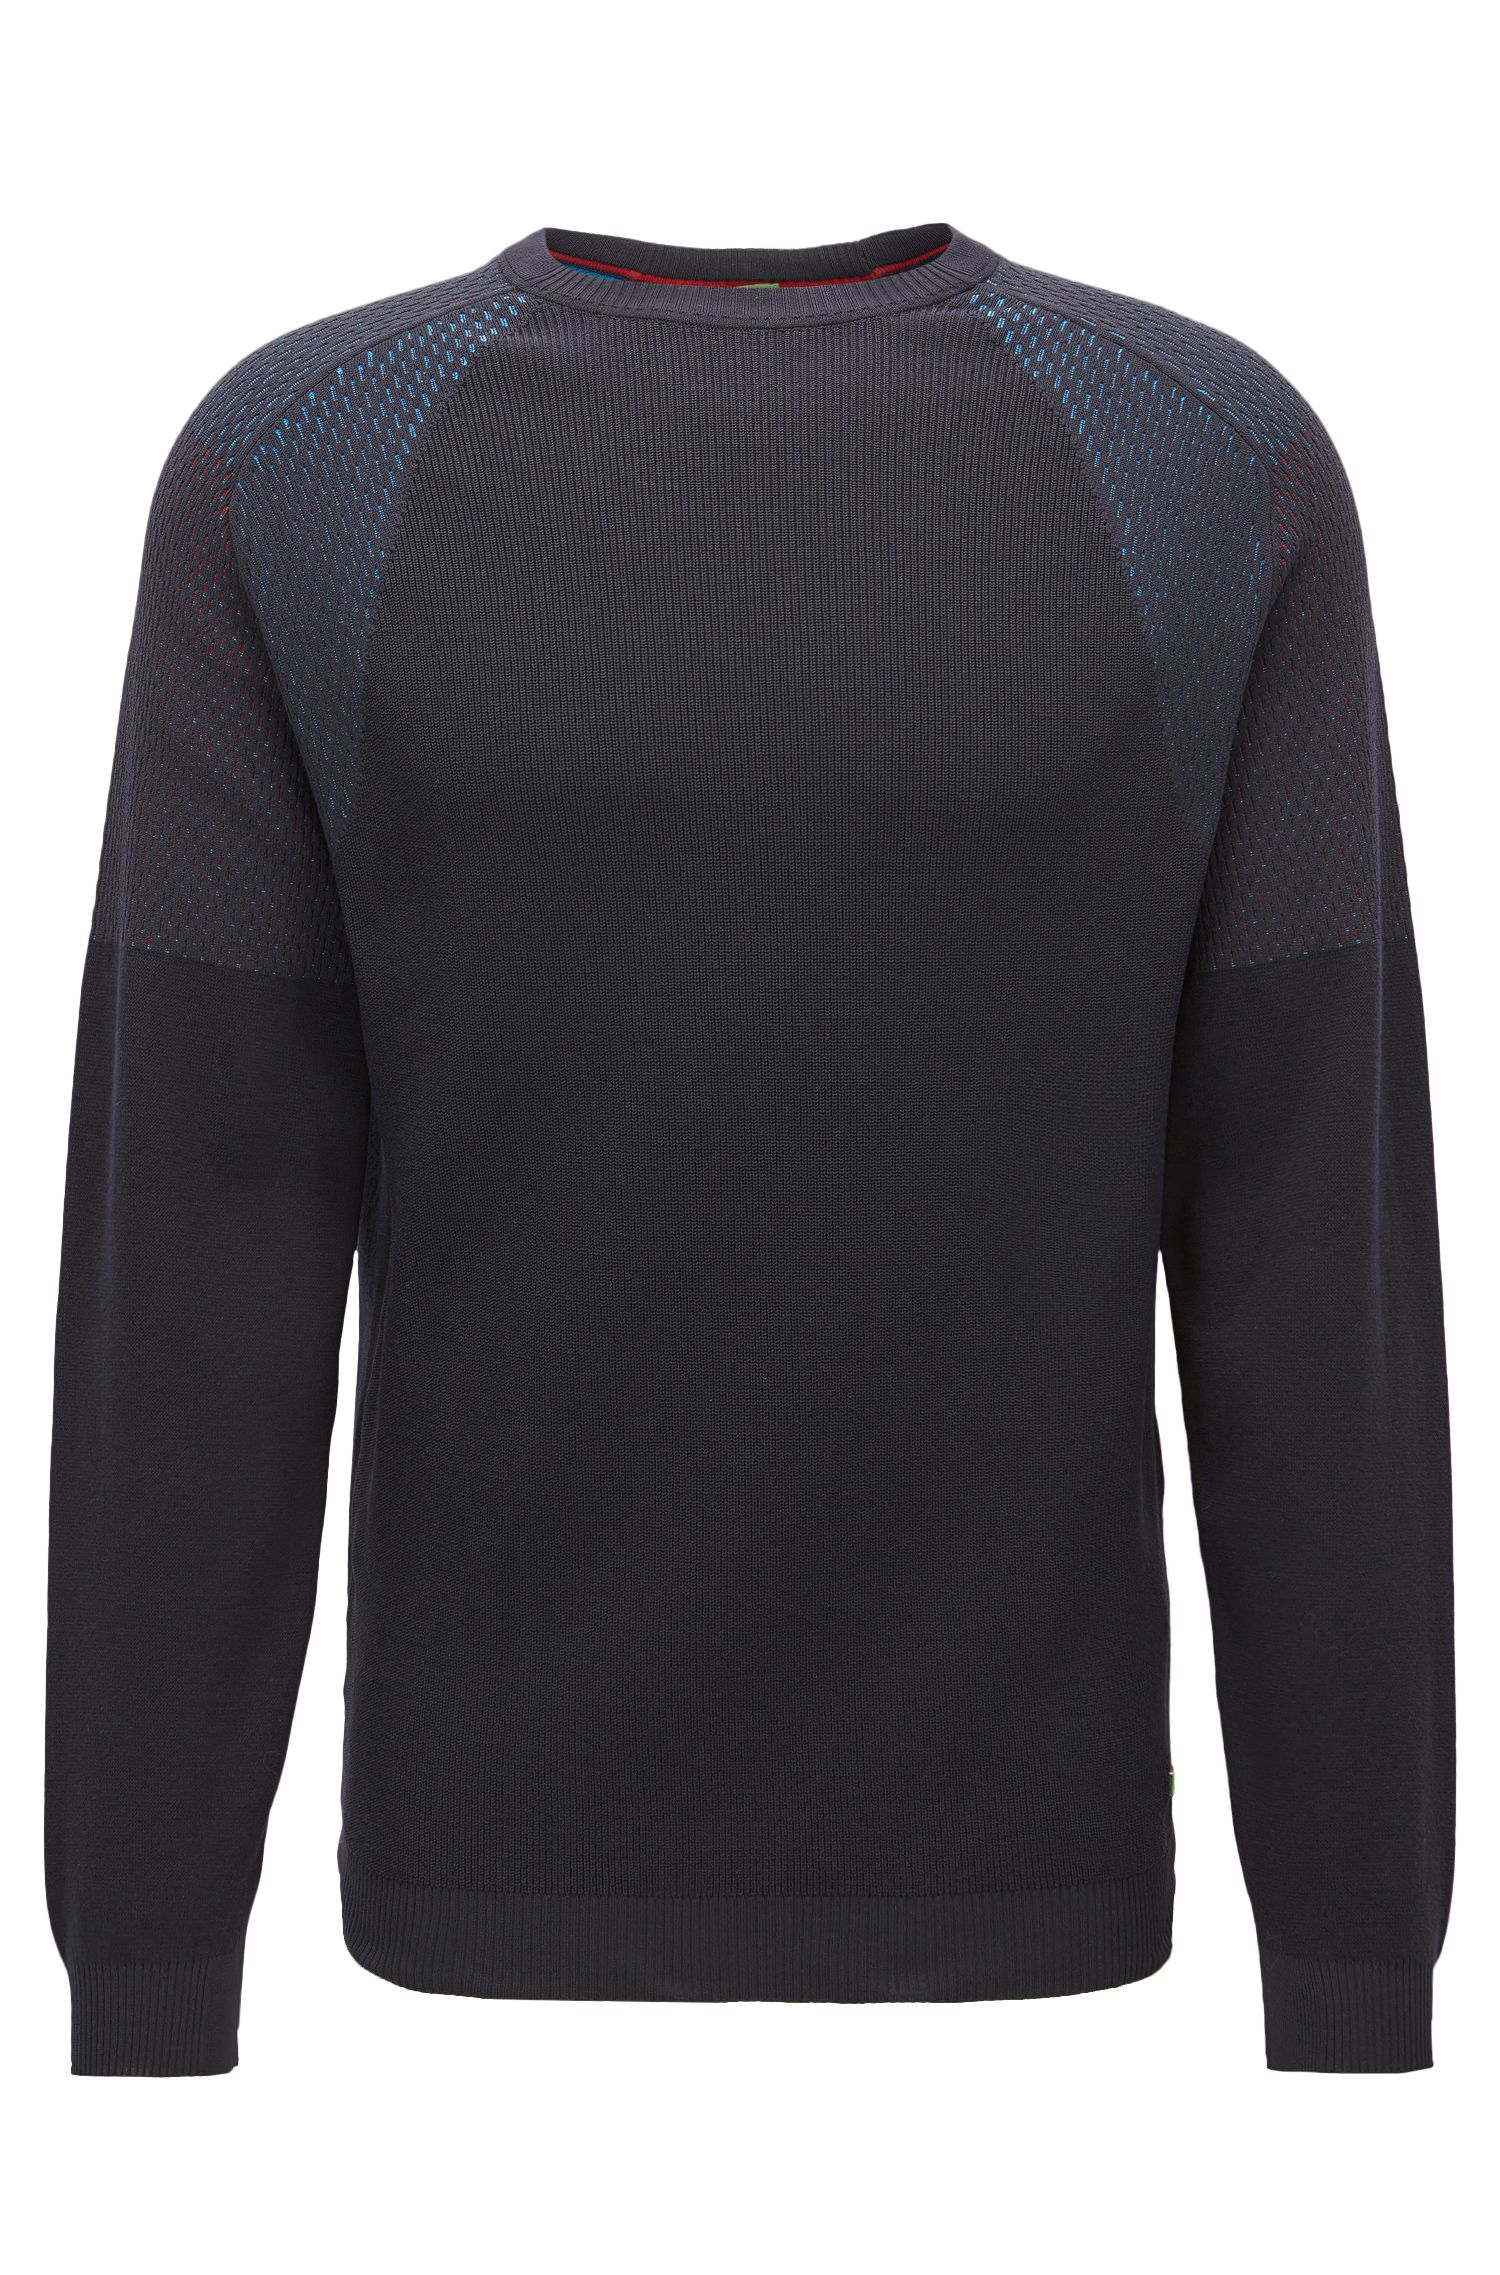 Crew-neck sweater in mixed structures